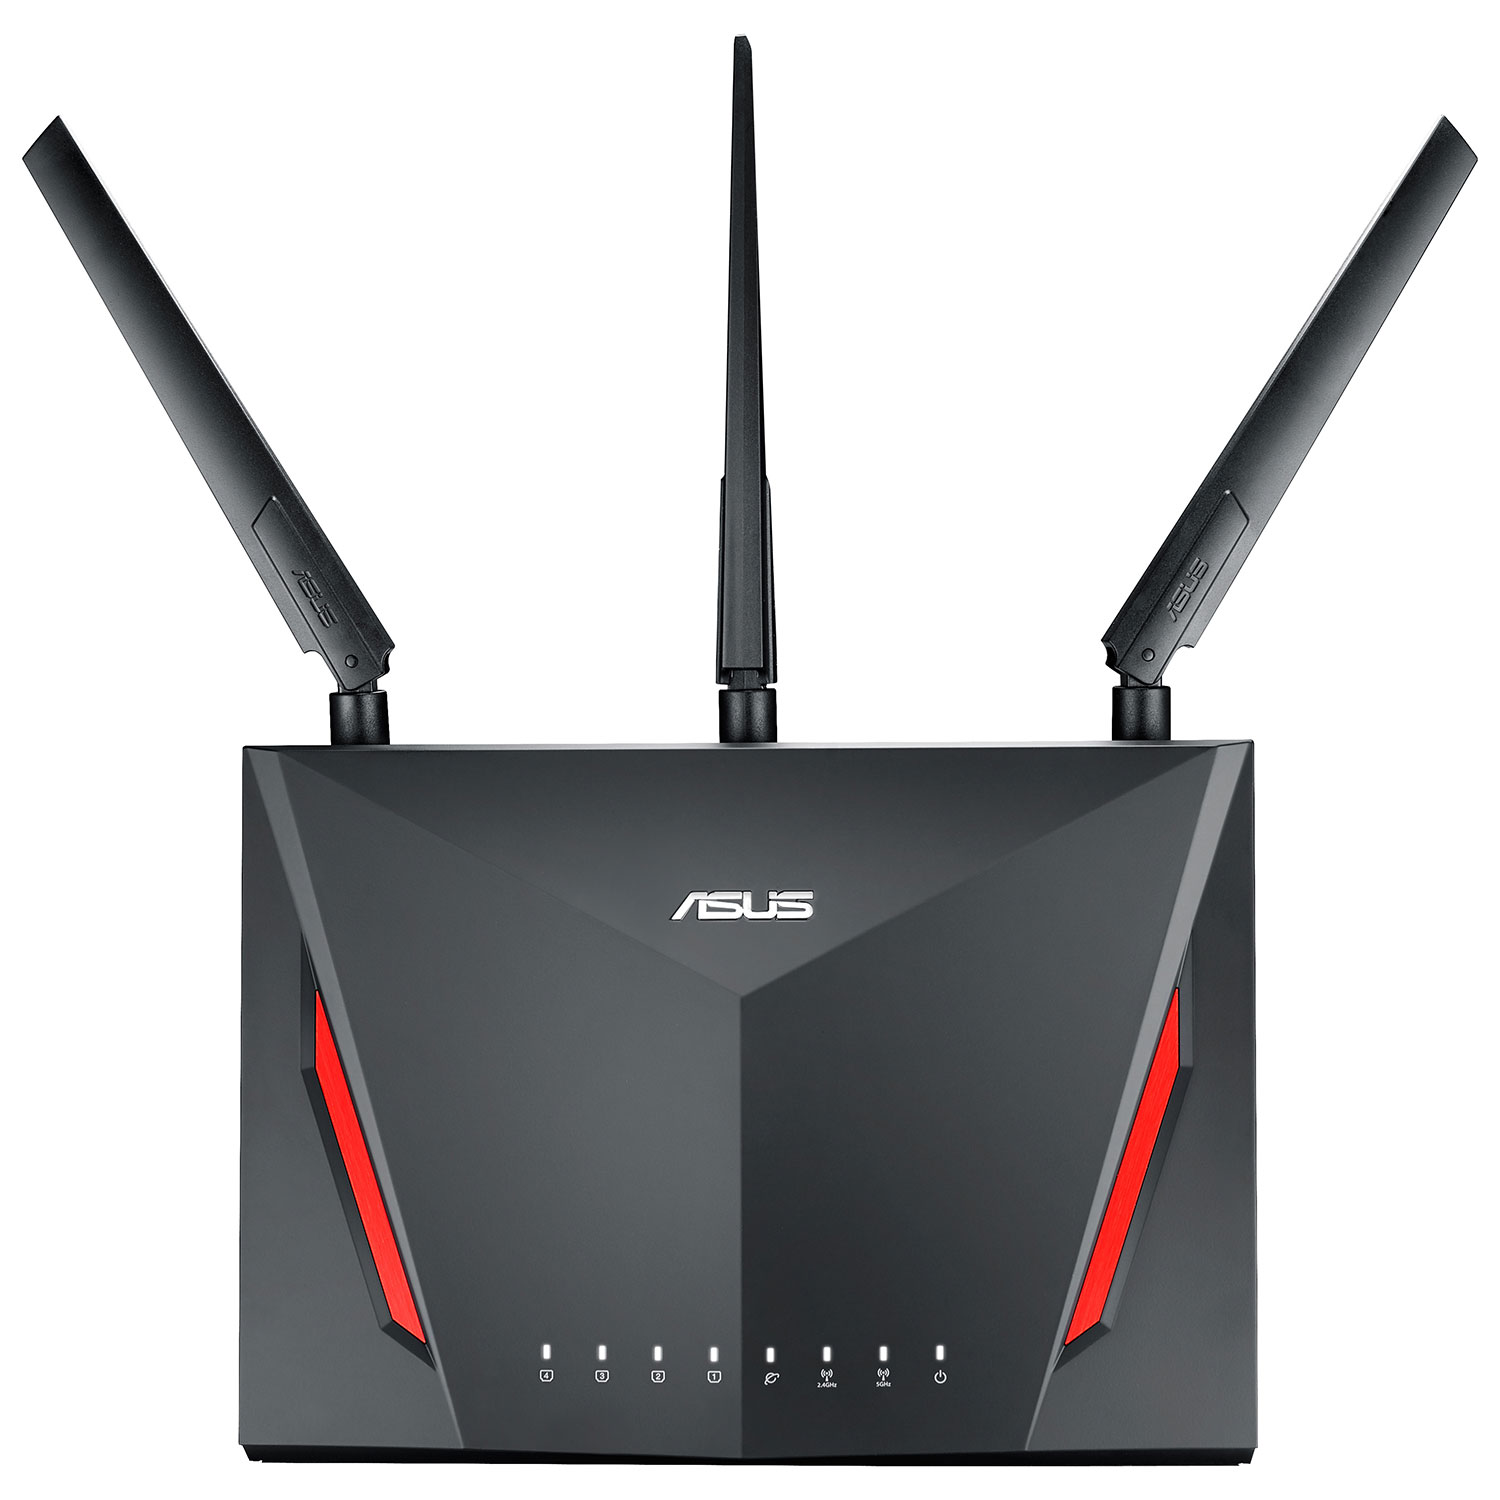 Wireless Routers Single Dual Tri Band Best Buy Canada Linksys E2500 Ap N600 Router Asus Ac2900 Gigabit Rt Ac86u